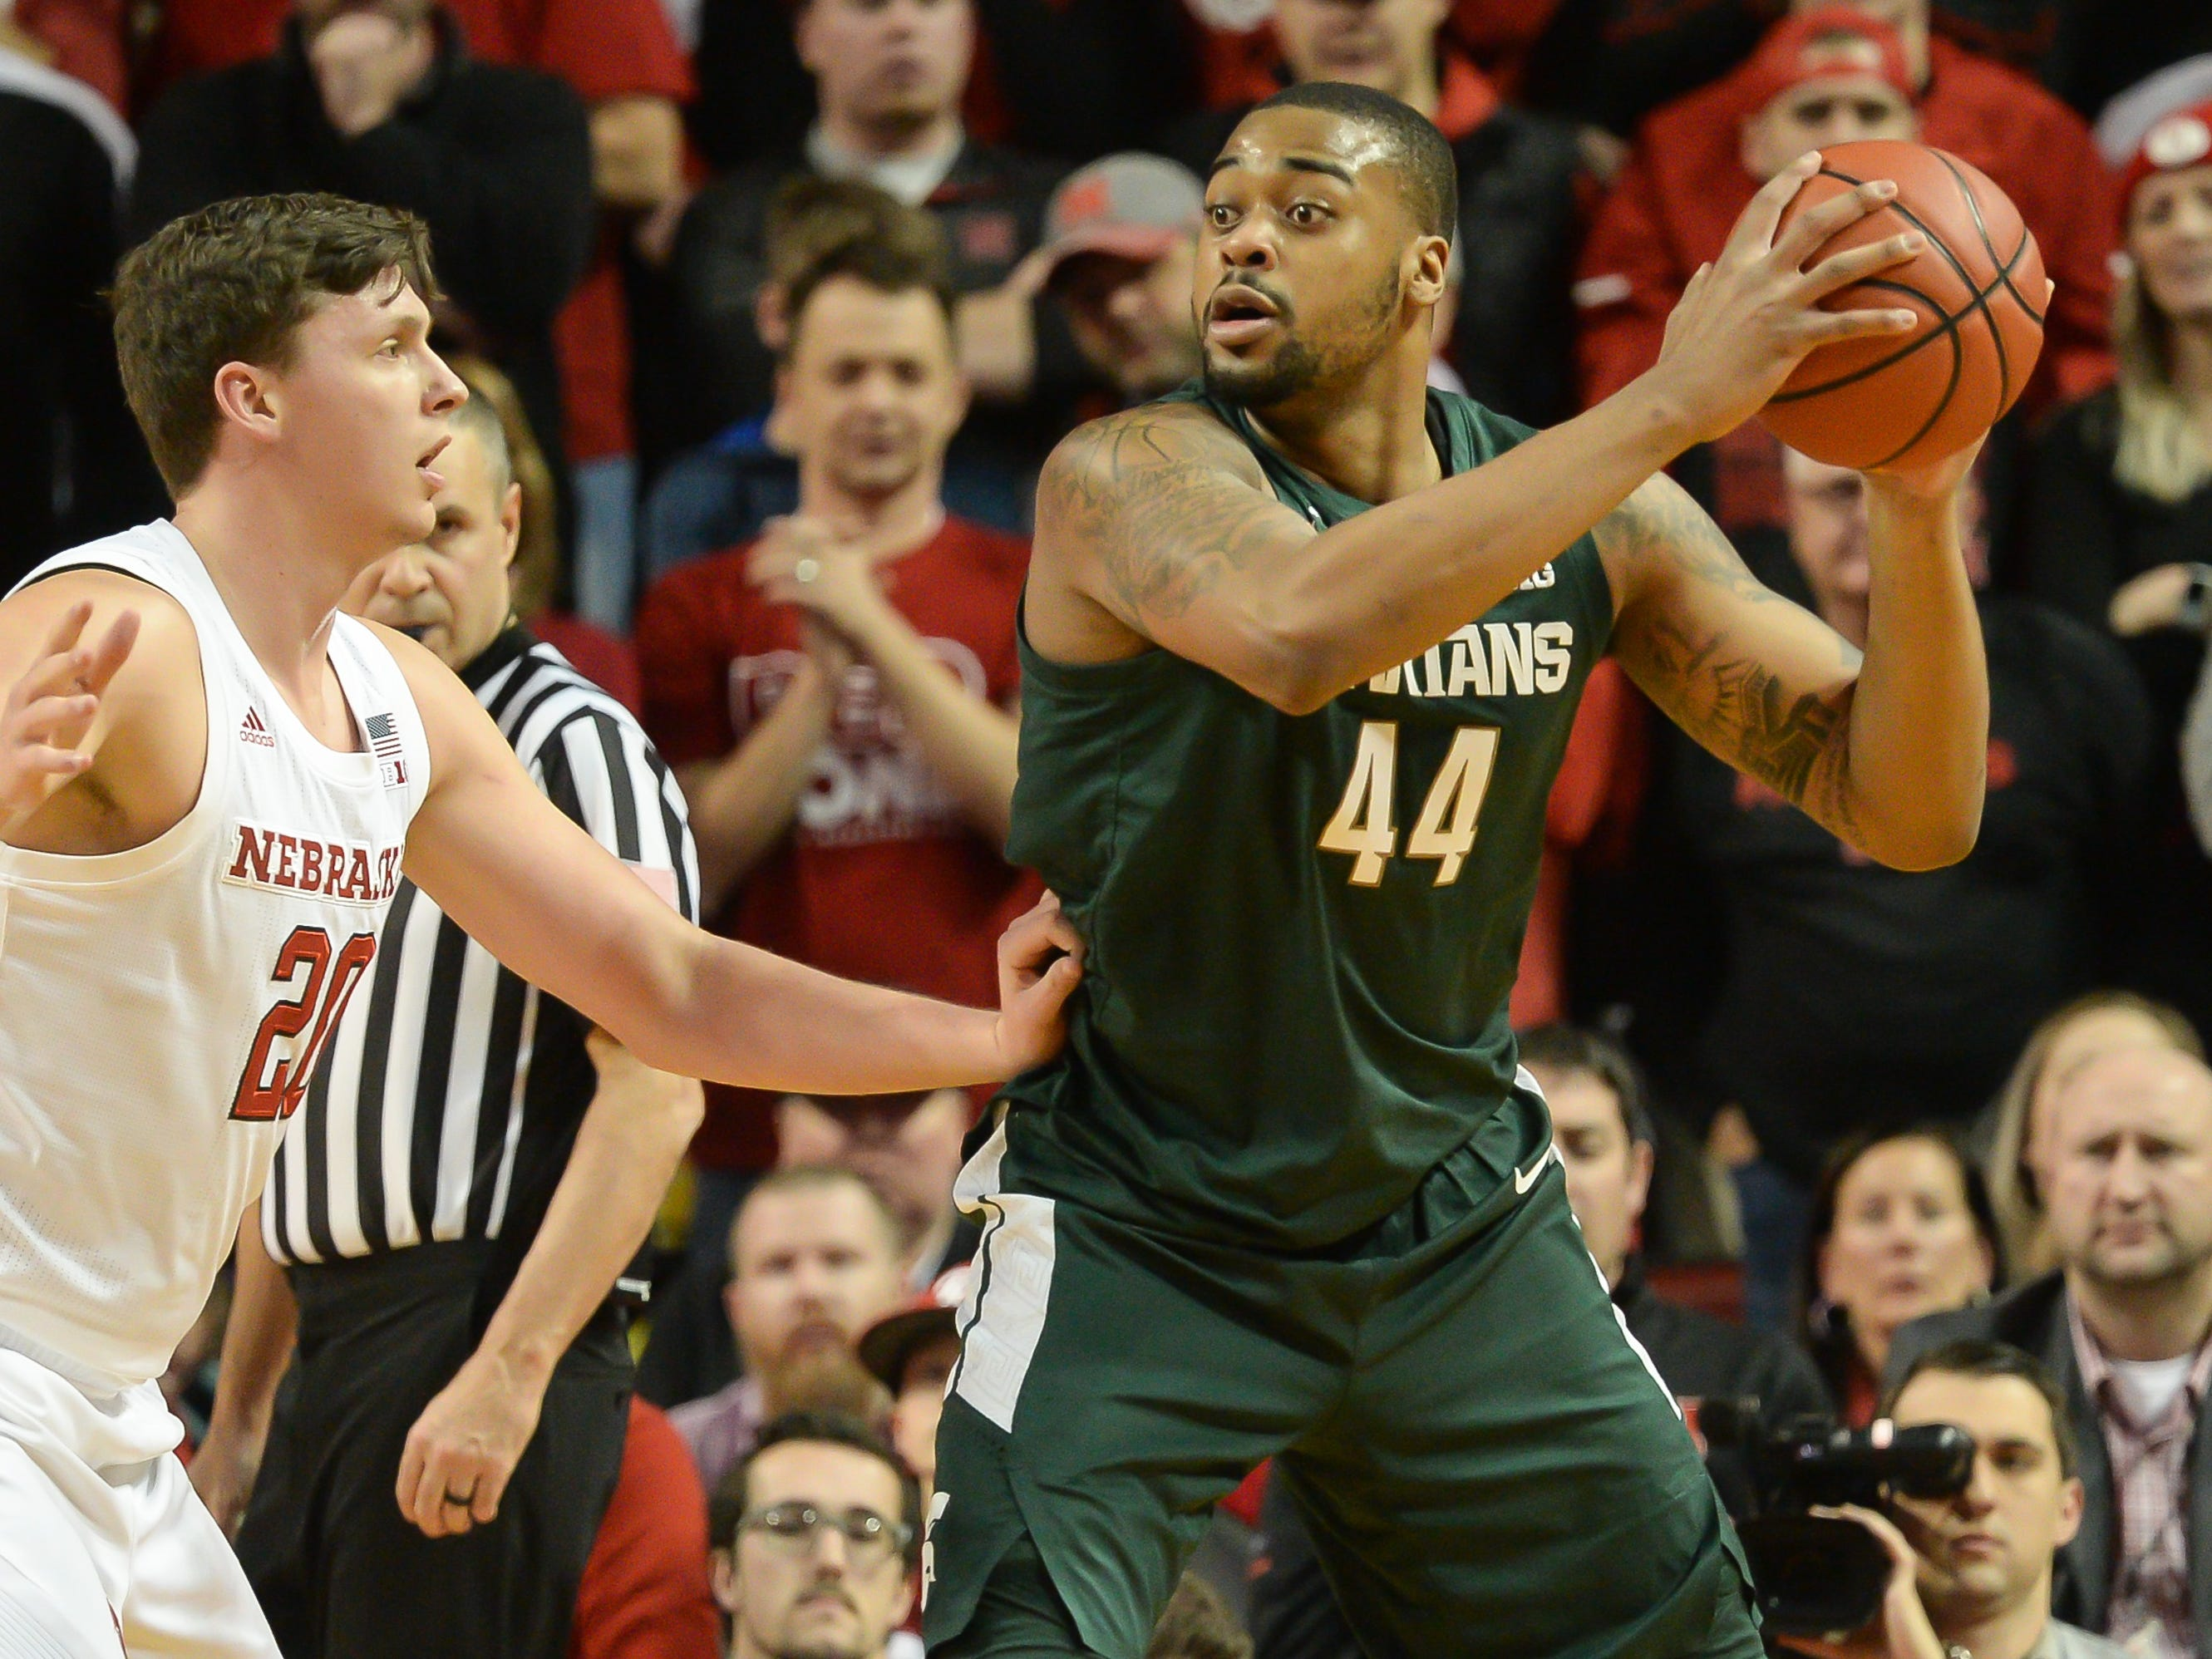 Nick Ward #44 of the Michigan State Spartans drives on Tanner Borchardt #20 of the Nebraska Cornhuskers at Pinnacle Bank Arena on January 17, 2019 in Lincoln, Nebraska.